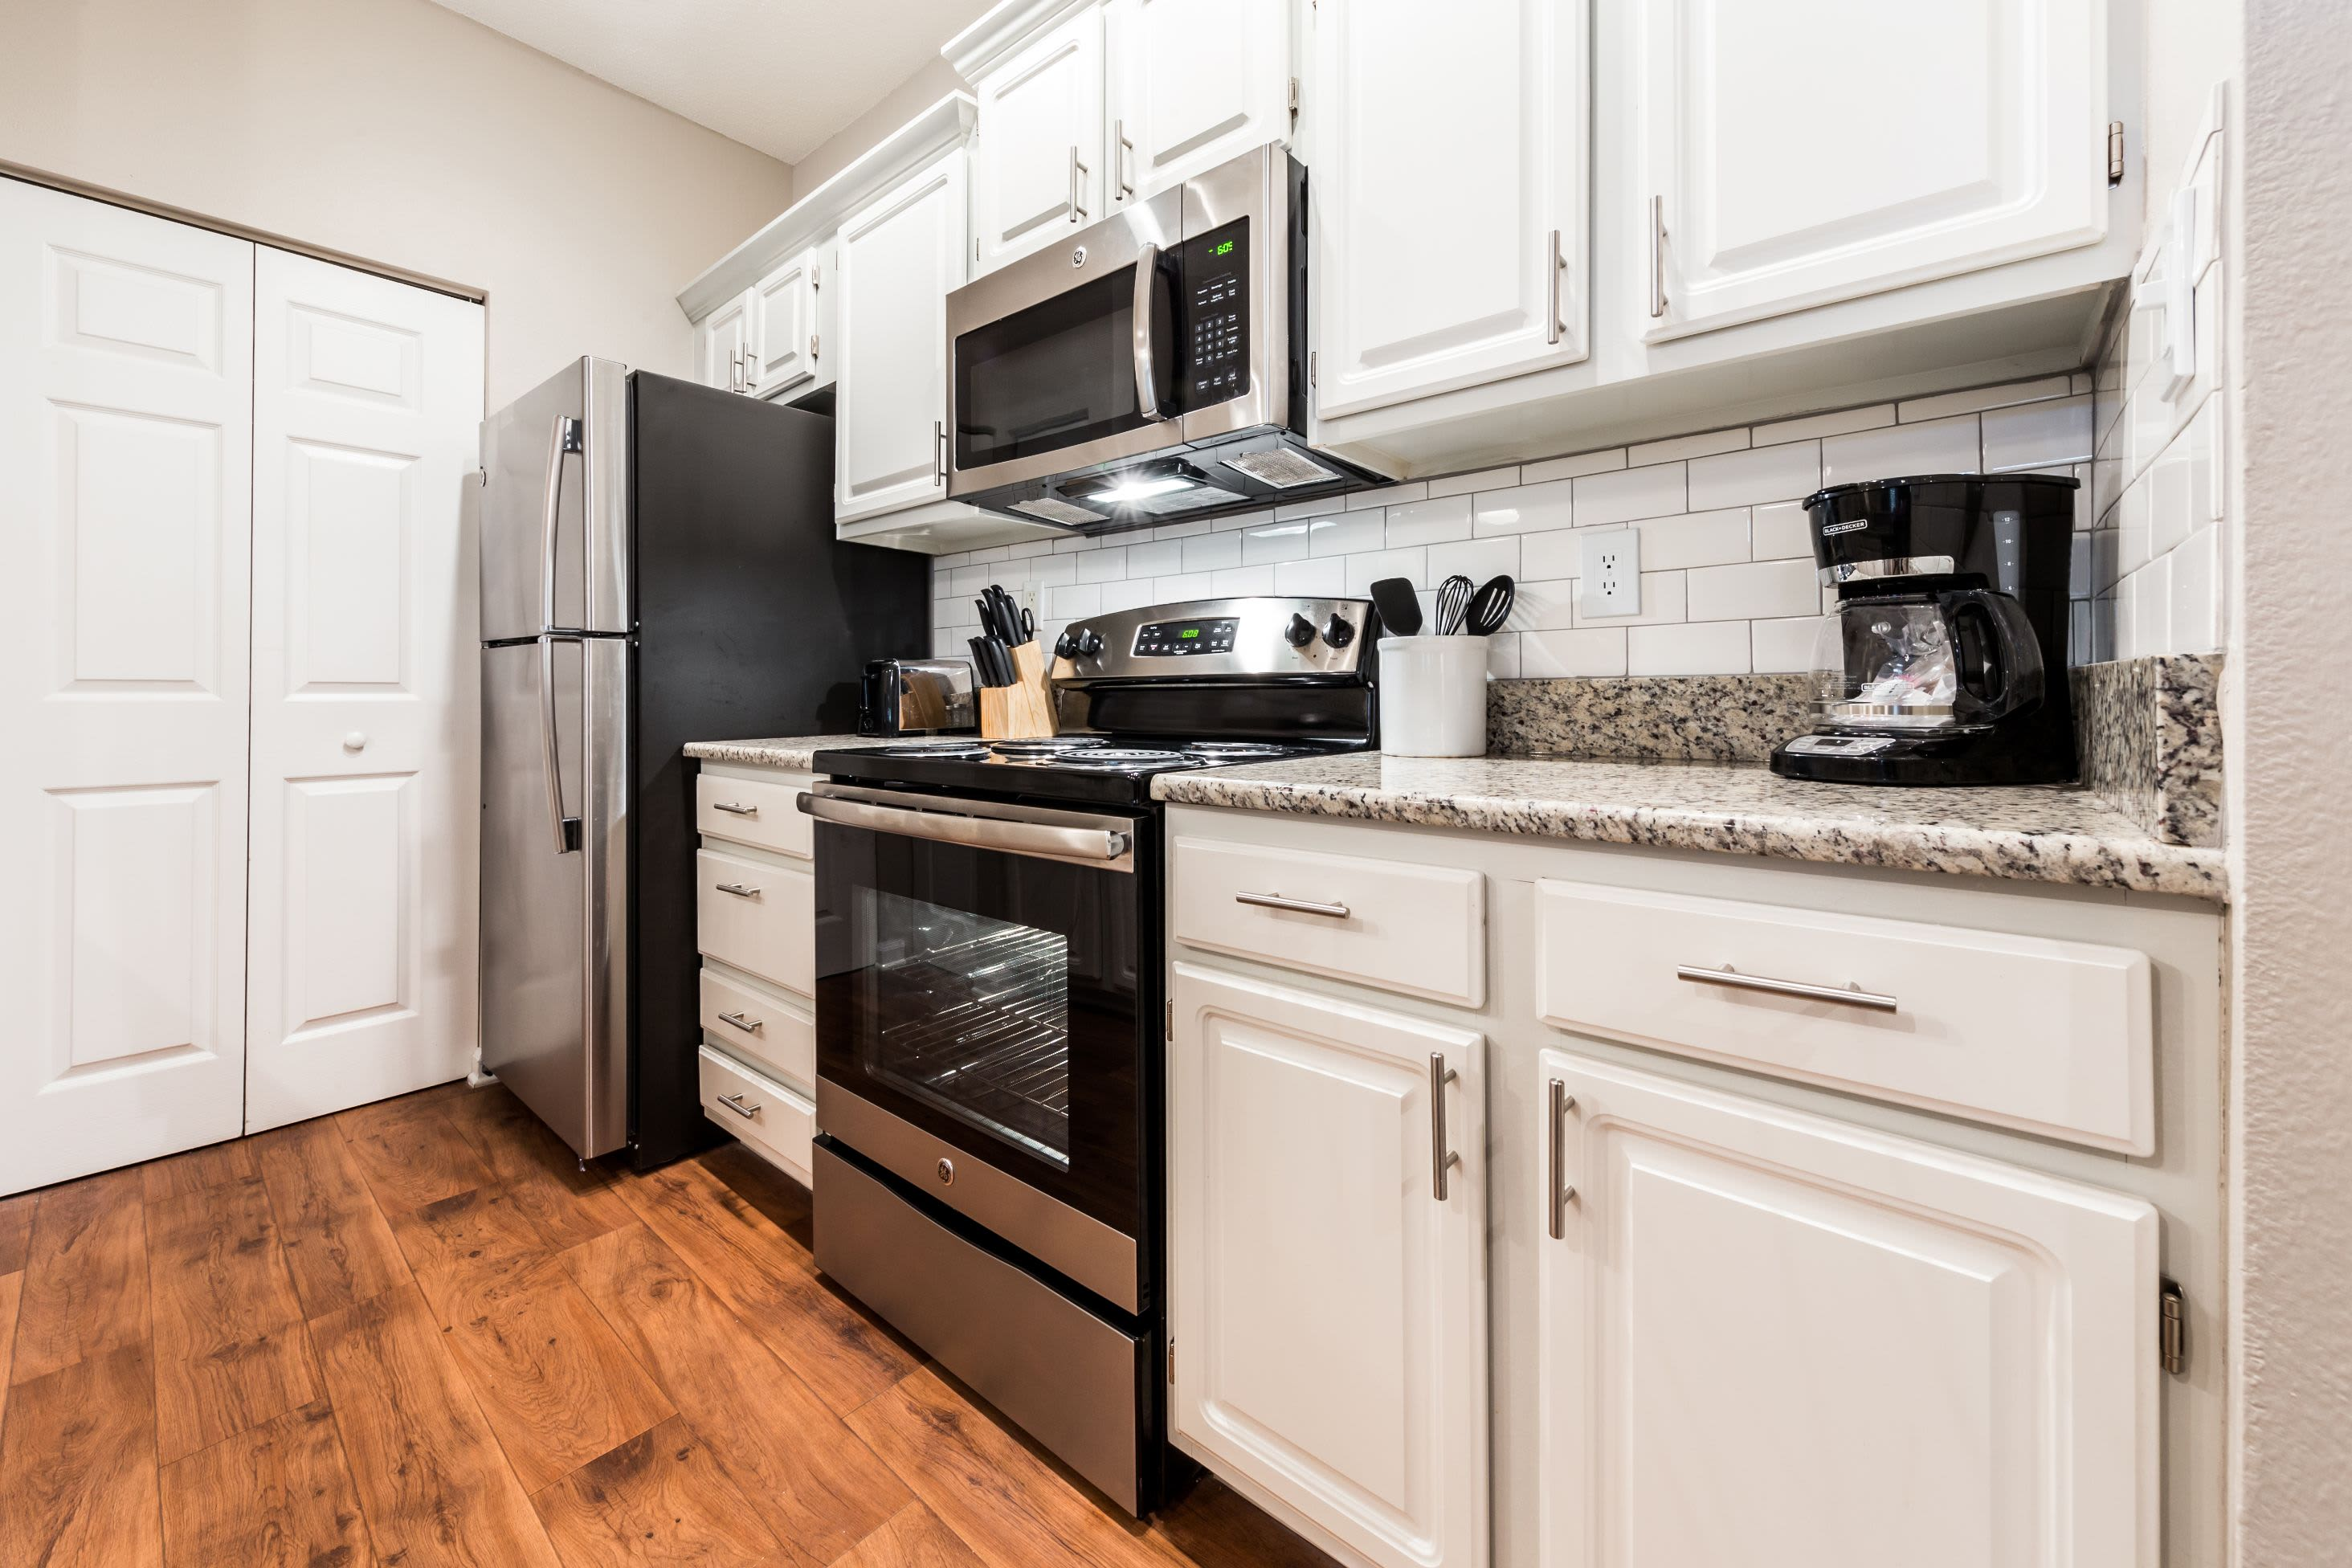 Modern kitchen with white cabinets at The Preserve at Ballantyne Commons in Charlotte, North Carolina